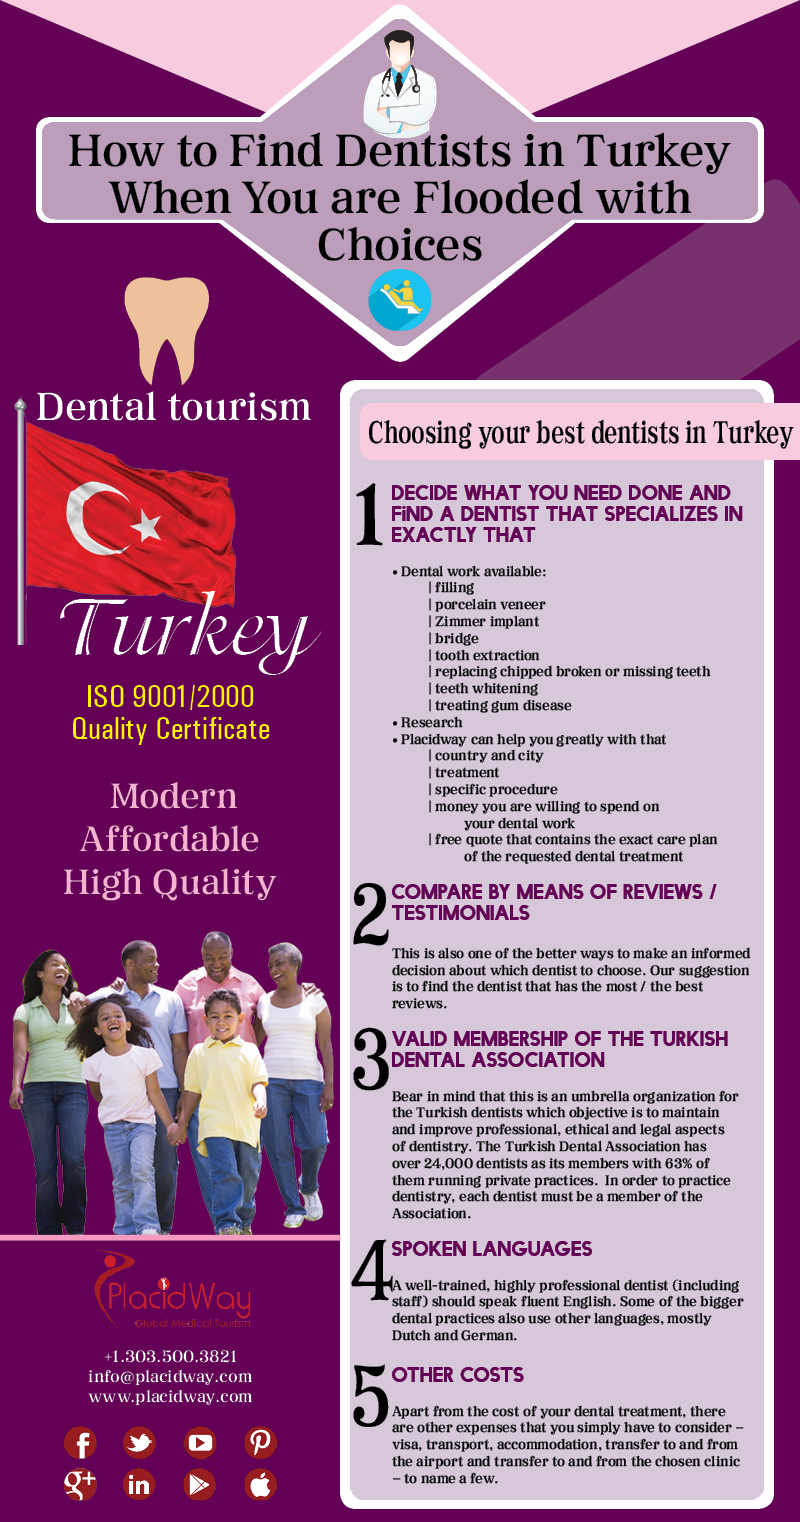 Infographics: How to Find Dentists in Turkey When You are Flooded with Choices